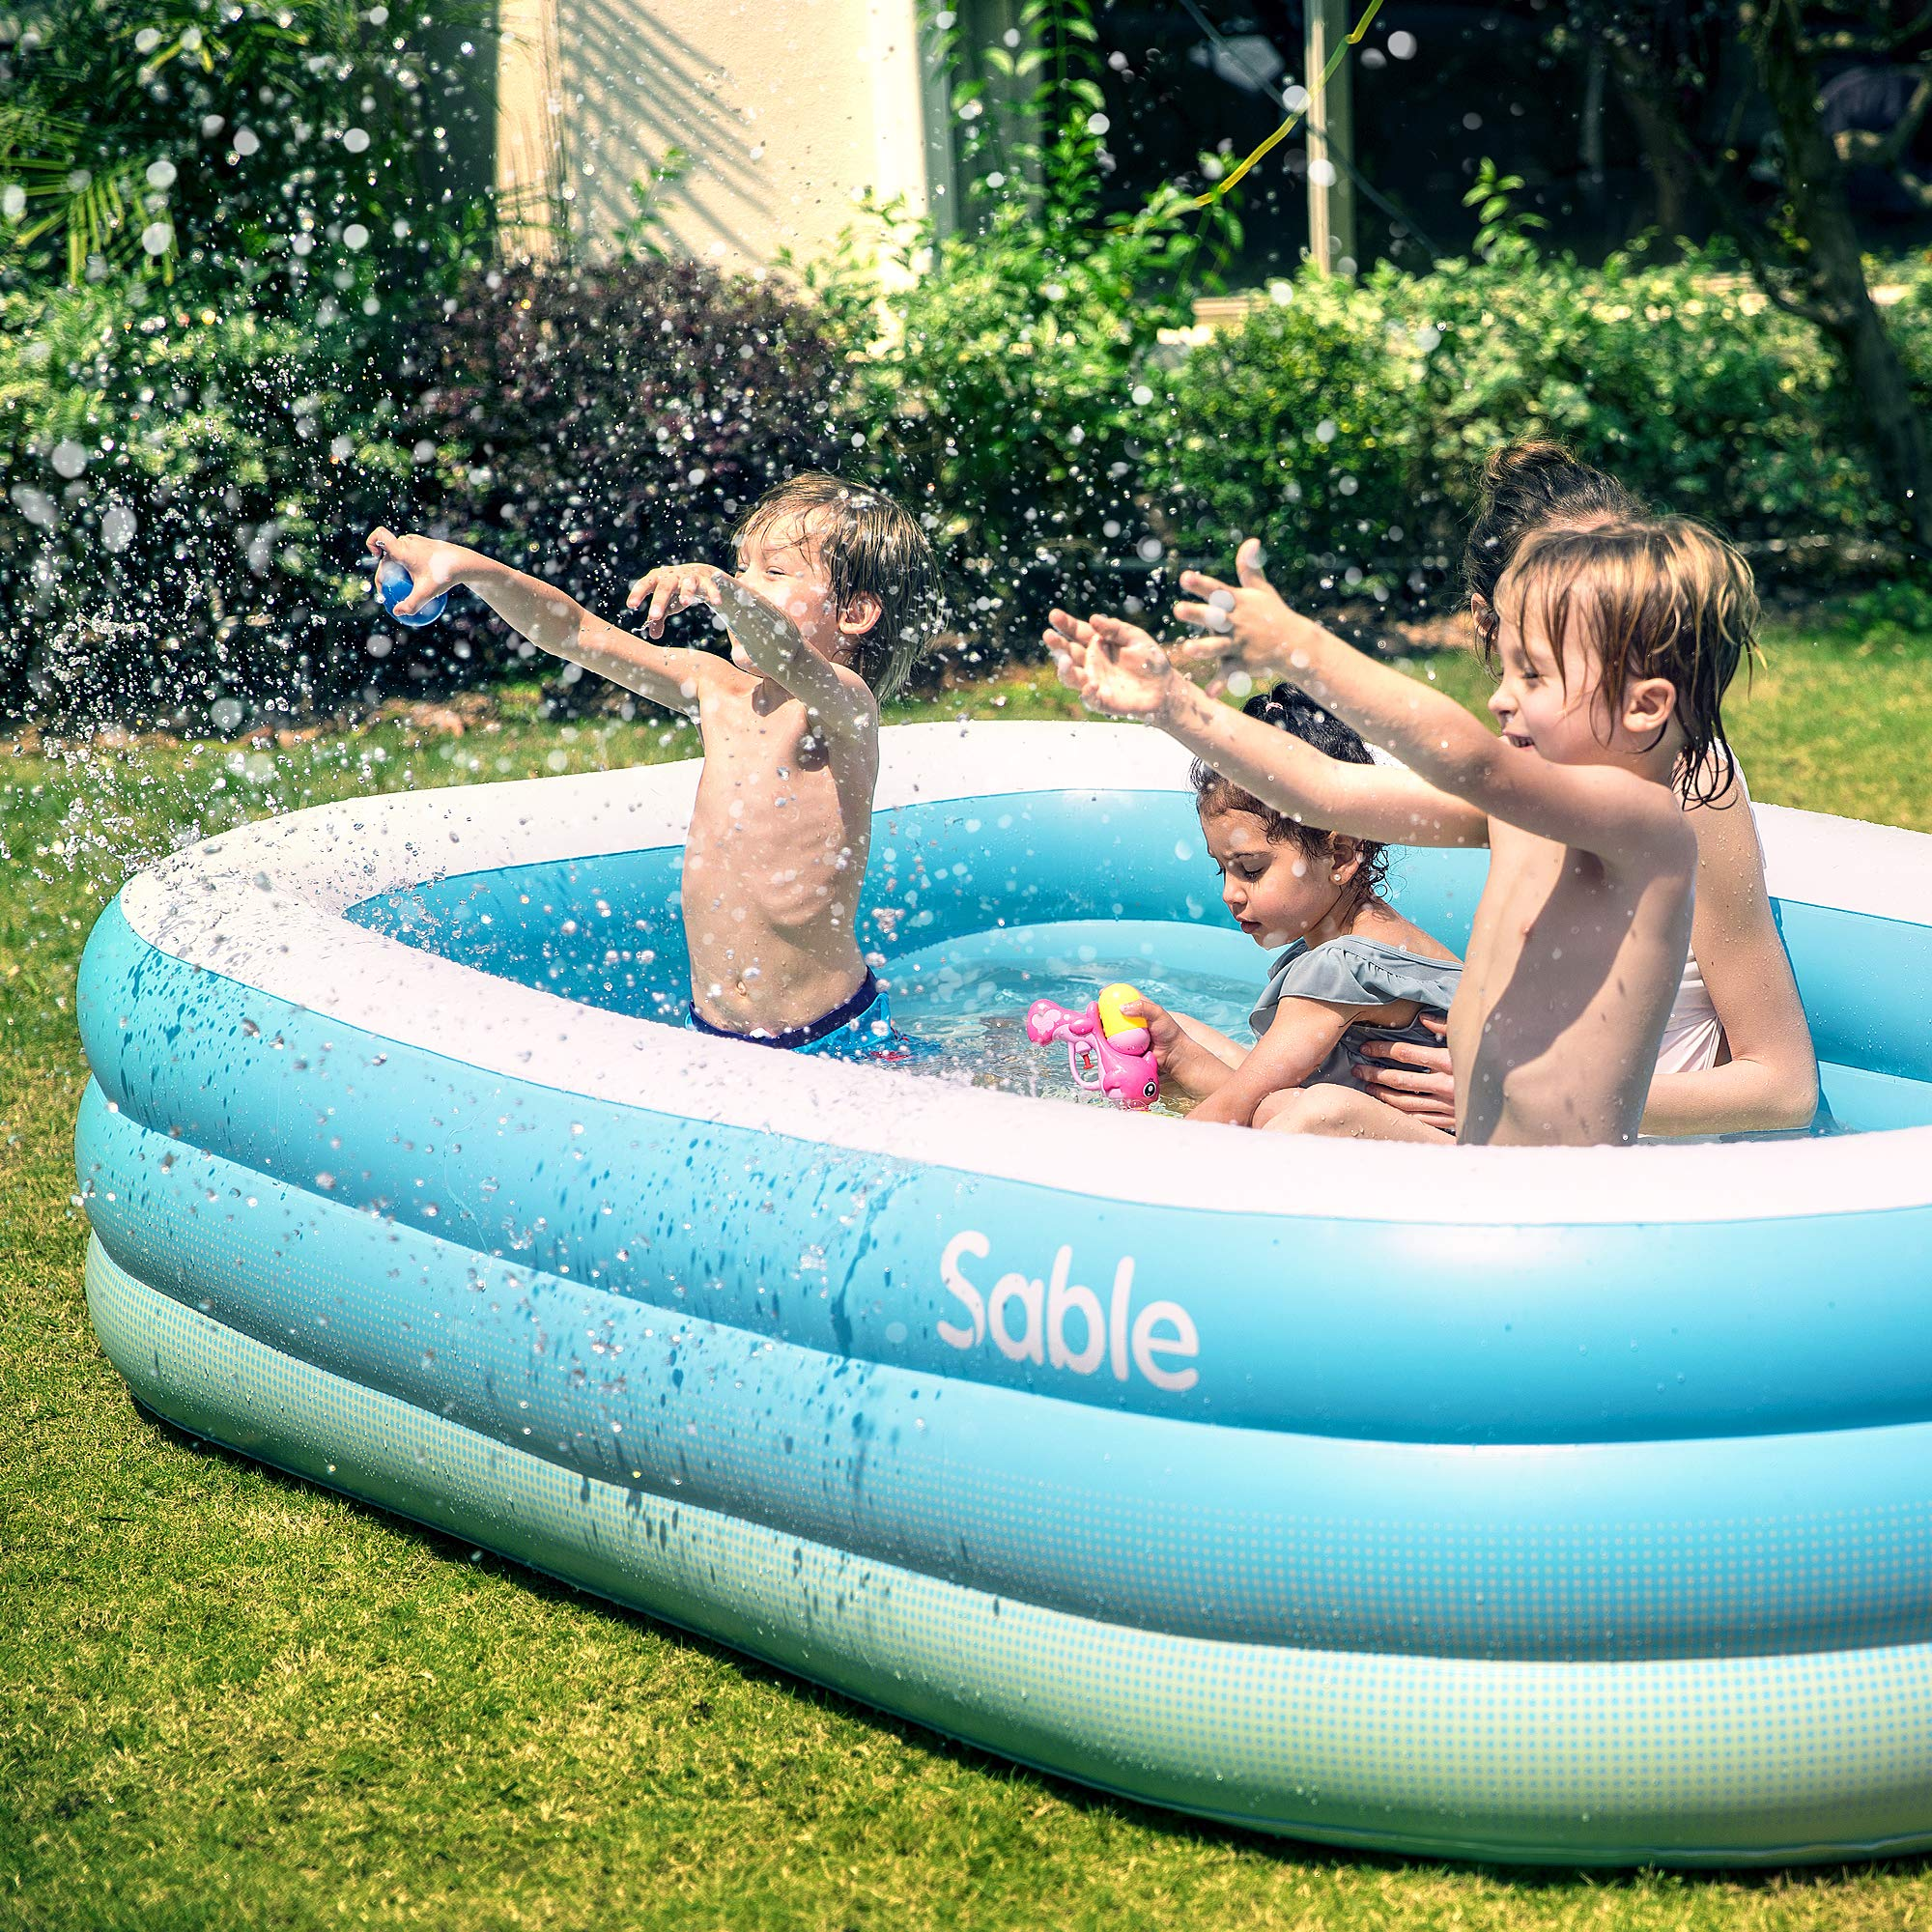 Sable Inflatable Pool, Family Swim Center Pool for Kids, Adults, Backyard, Outdoor, 92'' X 56'' X 20'', for Ages 3+ by Sable (Image #2)